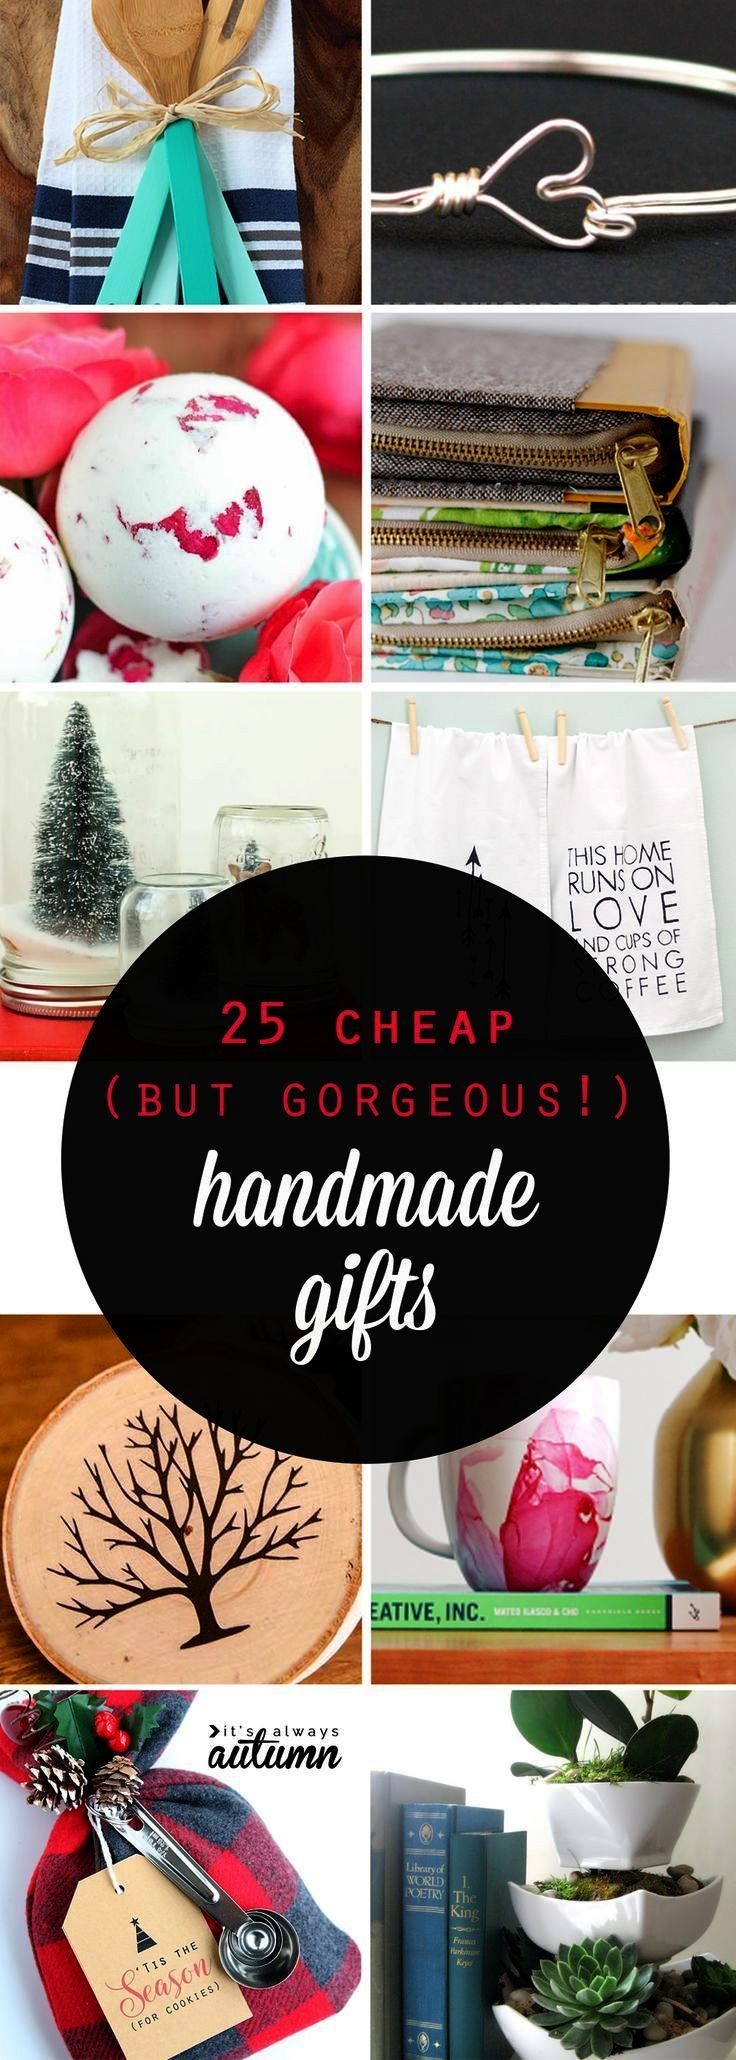 13220 best diy christmas gifts images on pinterest christmas homemade christmas presents for mom from daughter cool solutioingenieria Choice Image